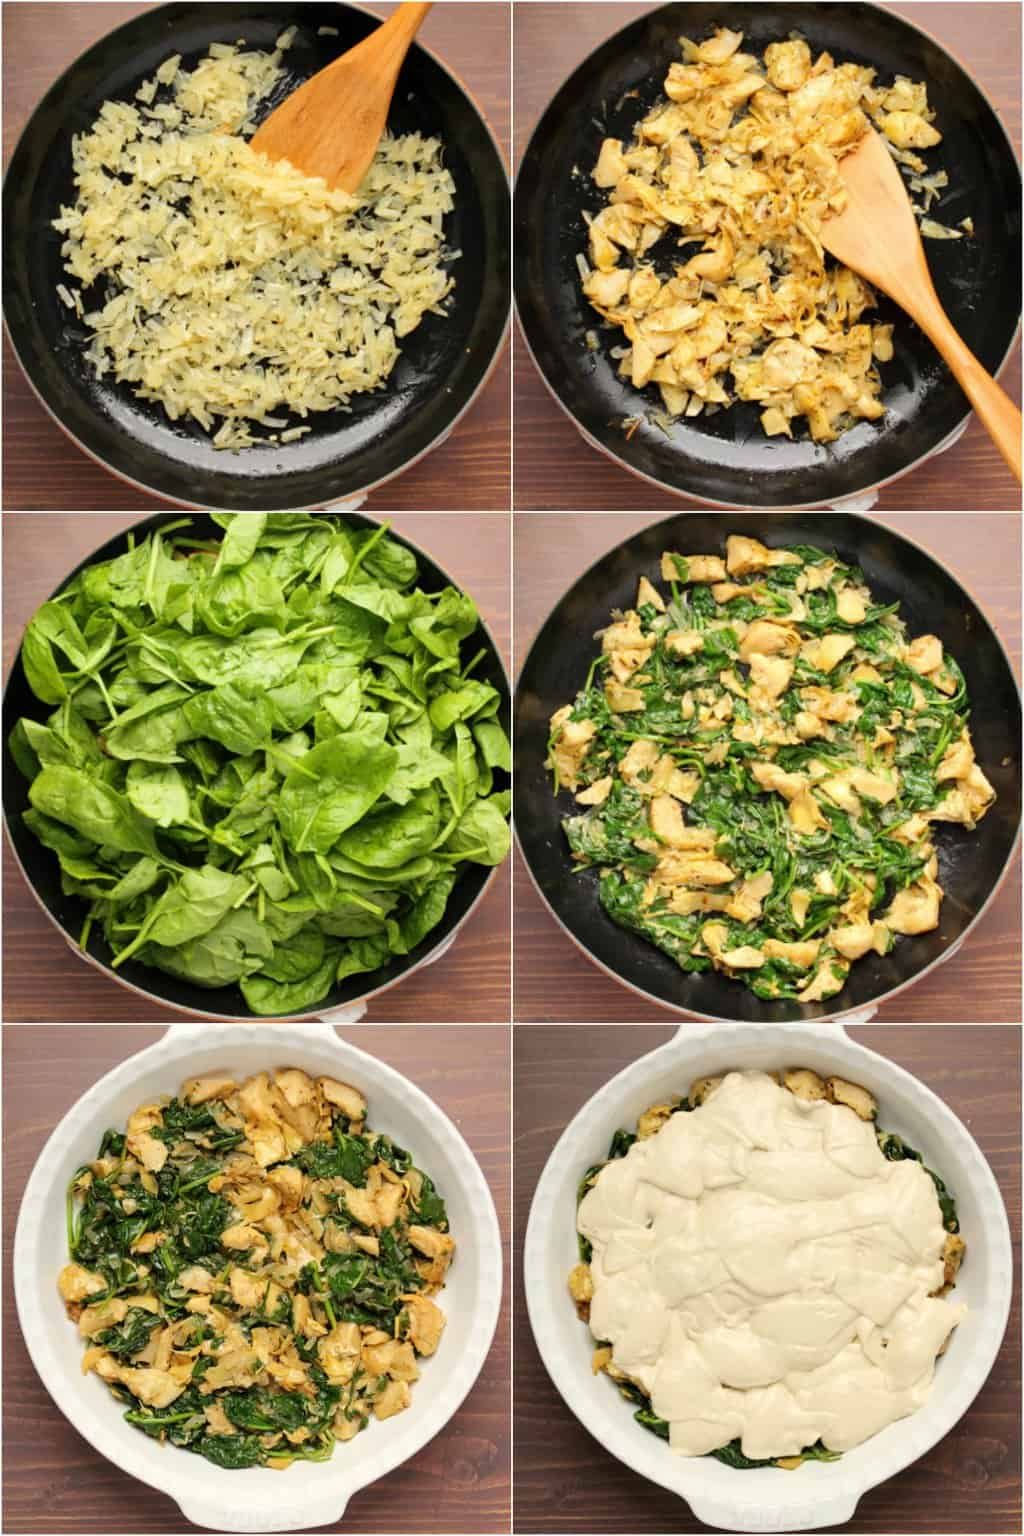 Step by step process photo collage of making vegan spinach artichoke dip.